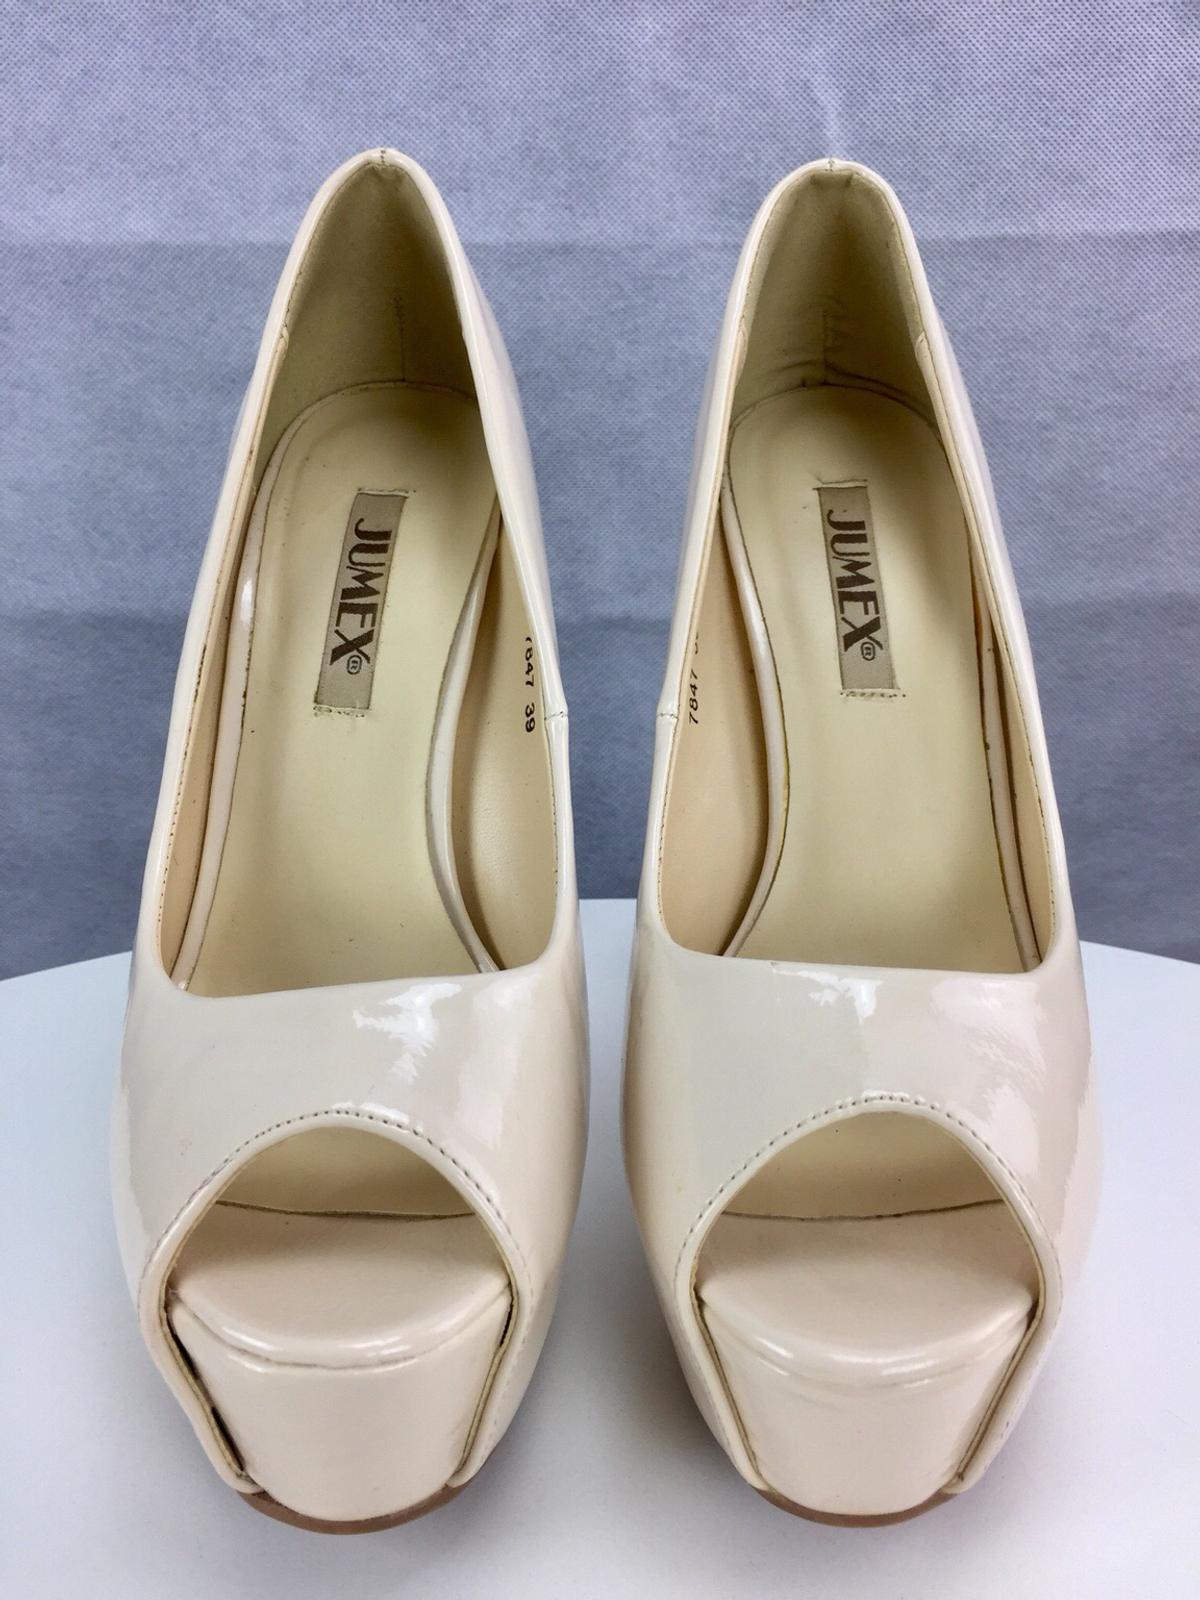 930e3f1a41f54f JUMEX Nude High Heels PEEPTOES PUMPS Gr. 39 in 85119 Ernsgaden for ...